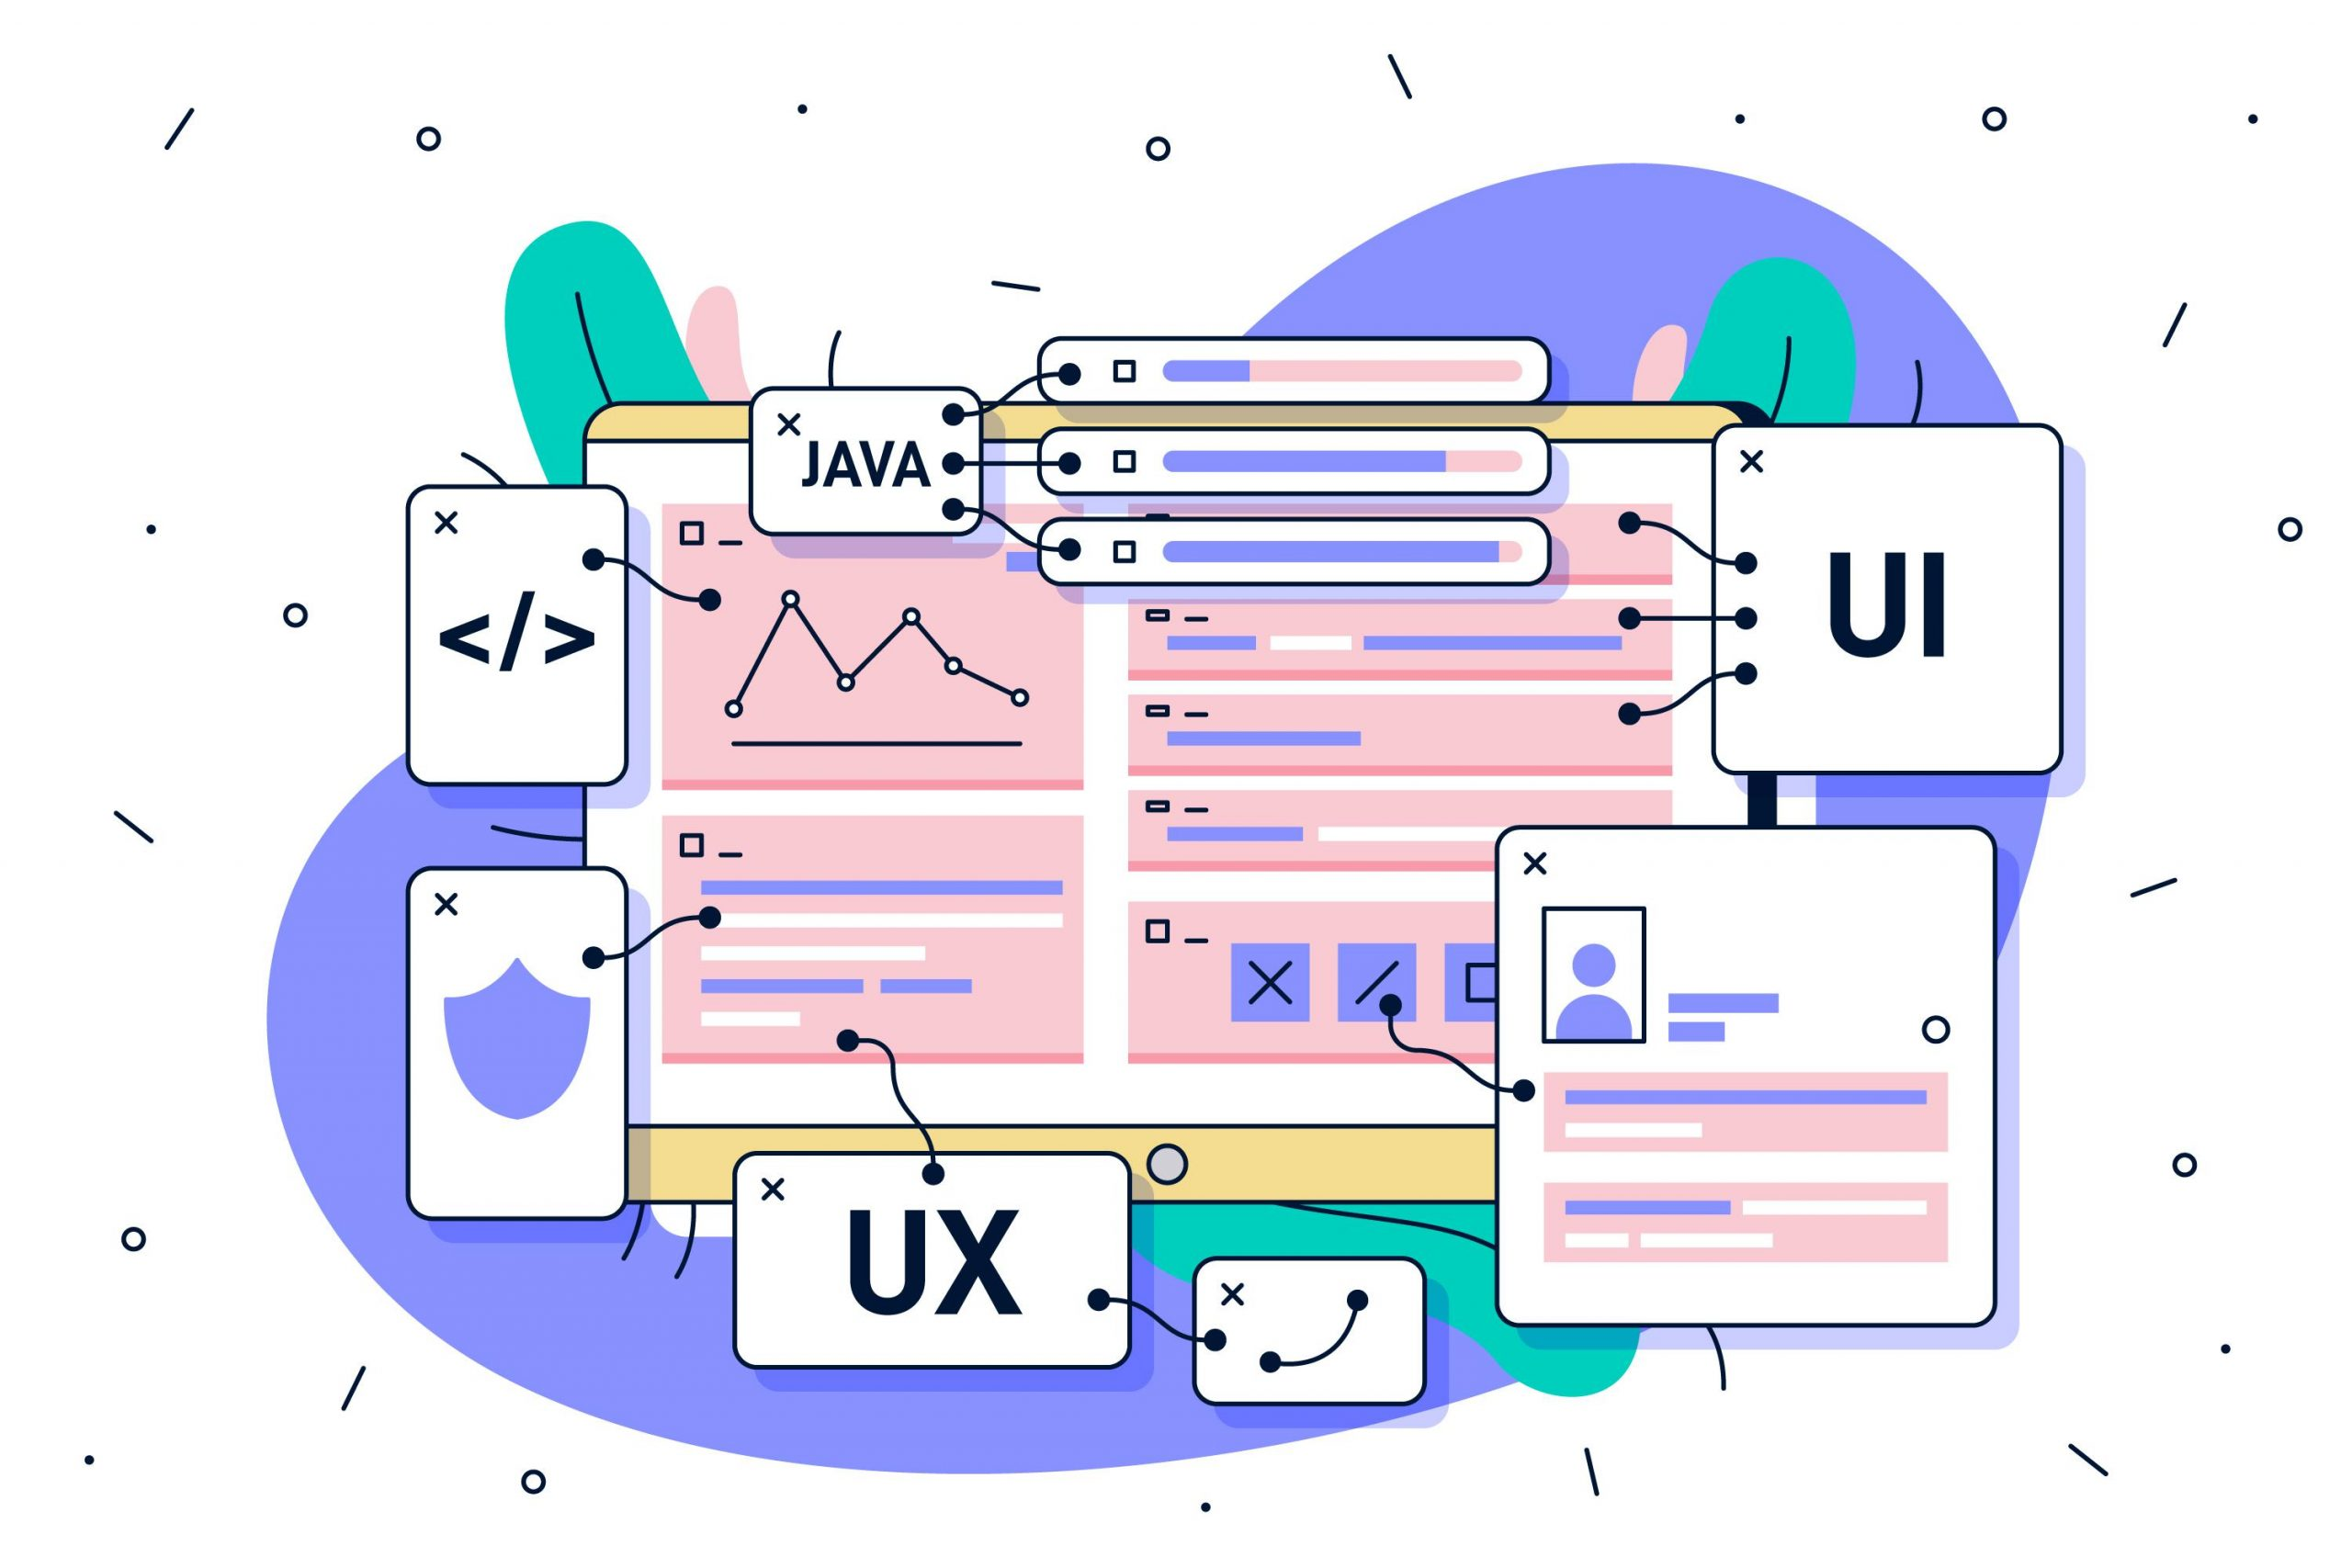 What is the difference between UI and UX designer?